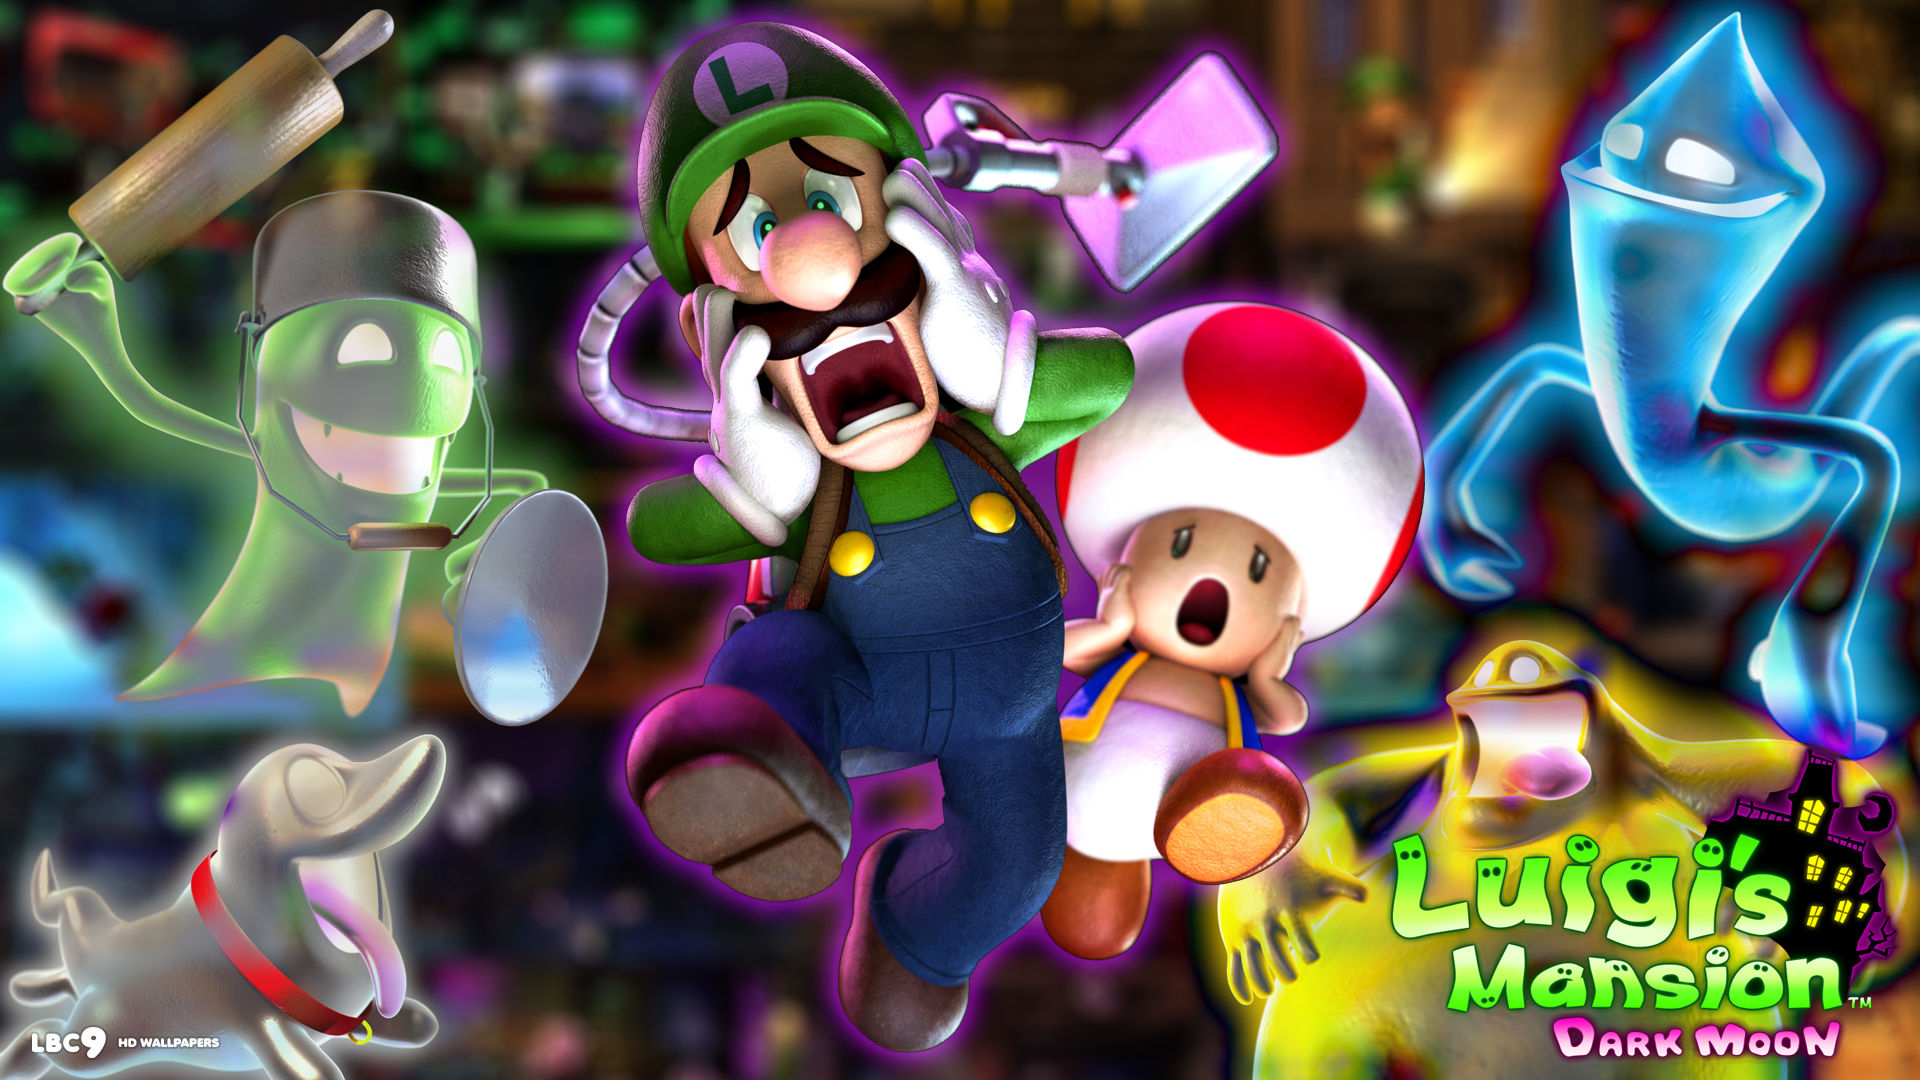 Princess Wall Mural Luigi S Mansion Full Hd Wallpaper And Background